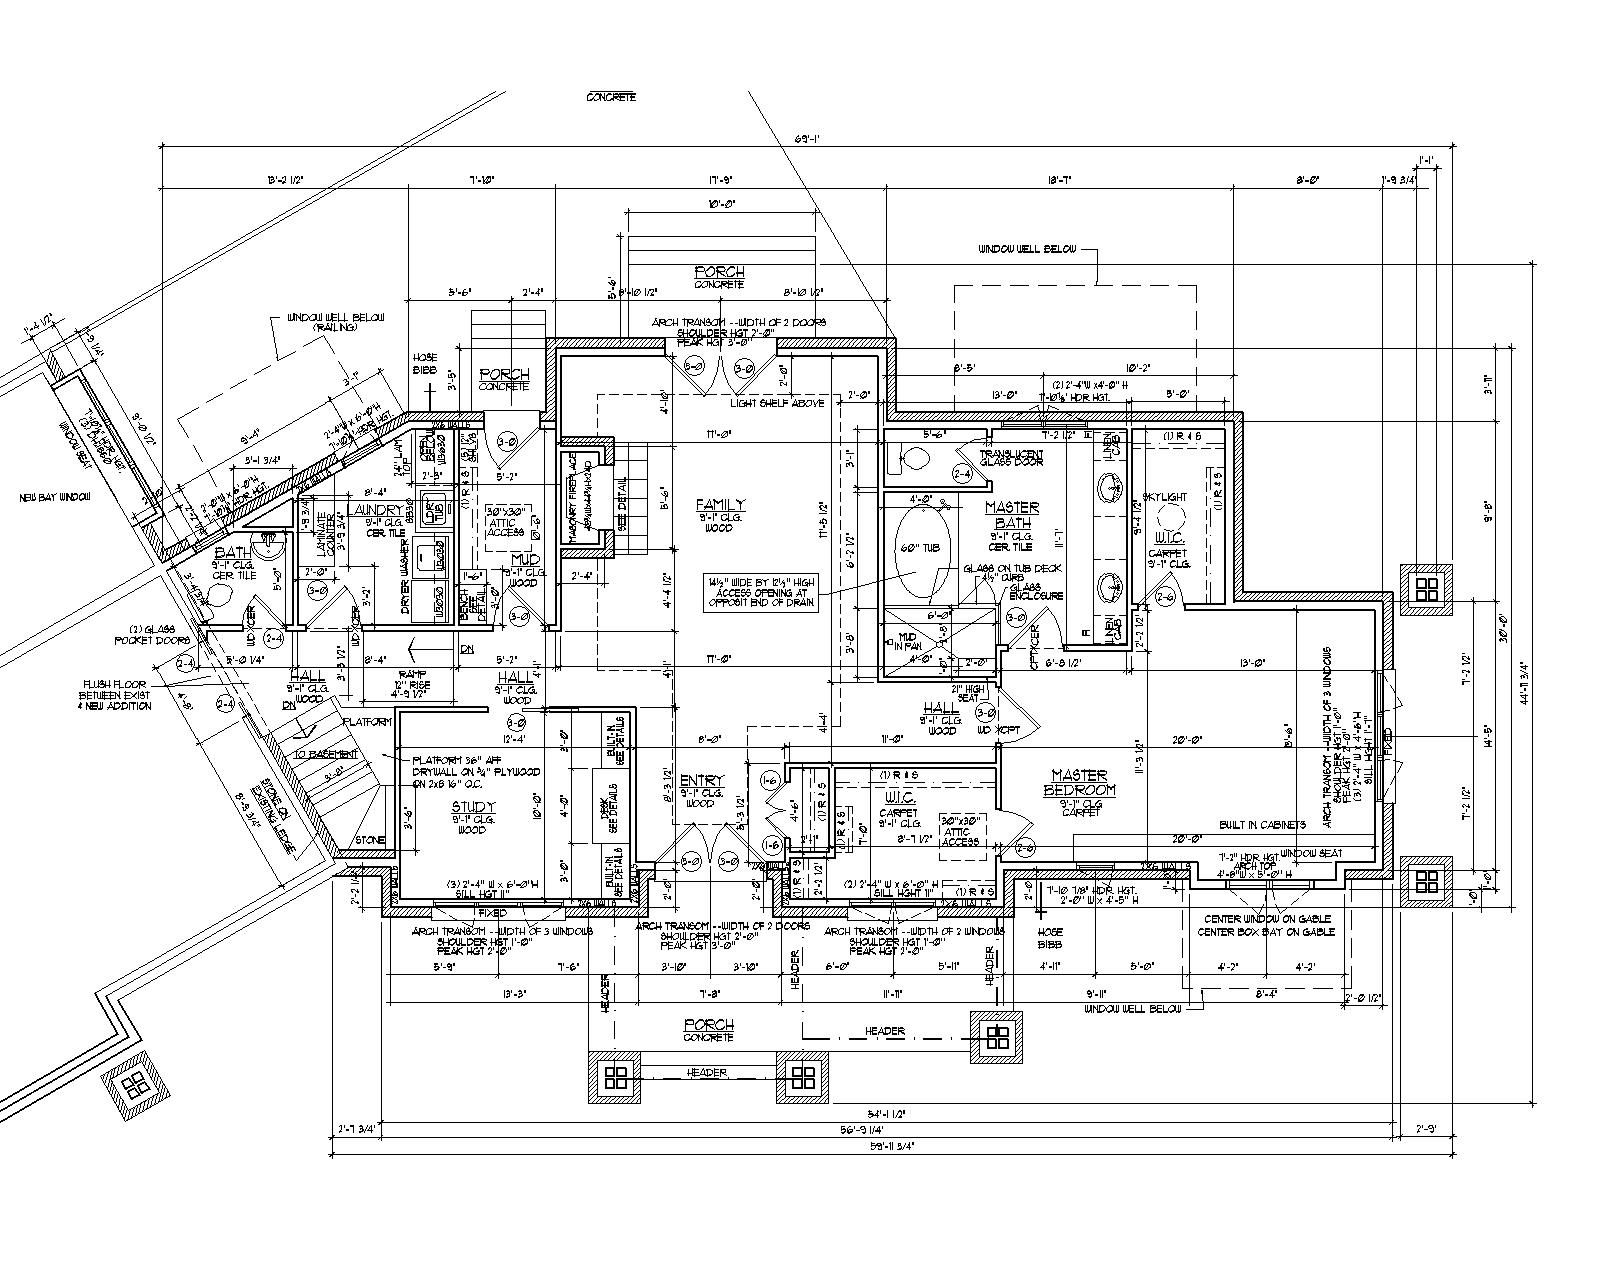 2d Autocad House Plans Residential Building Drawings Cad: autocad house drawings